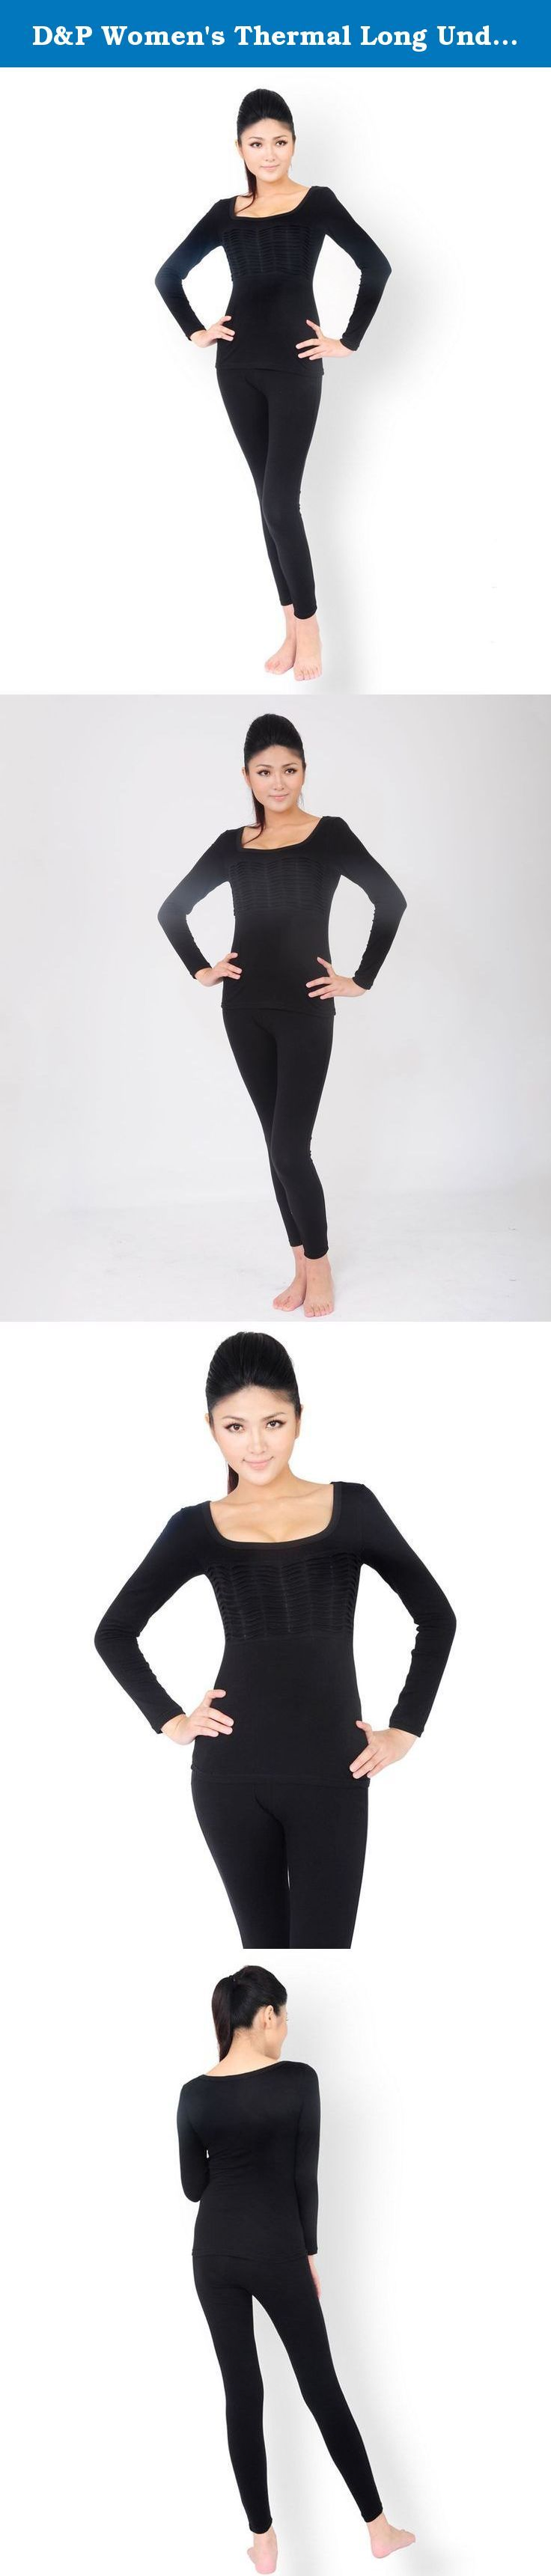 D&P Women's Thermal Long Underwear Sets Stretch Top and Bottom Black (XS, Black). Package includes: 1 Set of Women's Thermal Underwear (Top & Bottom). Size Chart X-Small (Shirt : Length 53 cm, Chest 72 cm/ Pants Length 84 cm, Waist 58 cm) Small (Shirt : Length 55 cm, Chest 76 cm/ Pants Length 86 cm, Waist 62cm) Medium (Shirt : Length 57 cm, Chest 80 cm/ Pants Length 88 cm, Waist 66 cm) Large (Shirt : Length 59 cm, Chest 82 cm/ Pants Length 90 cm, Waist 70cm).